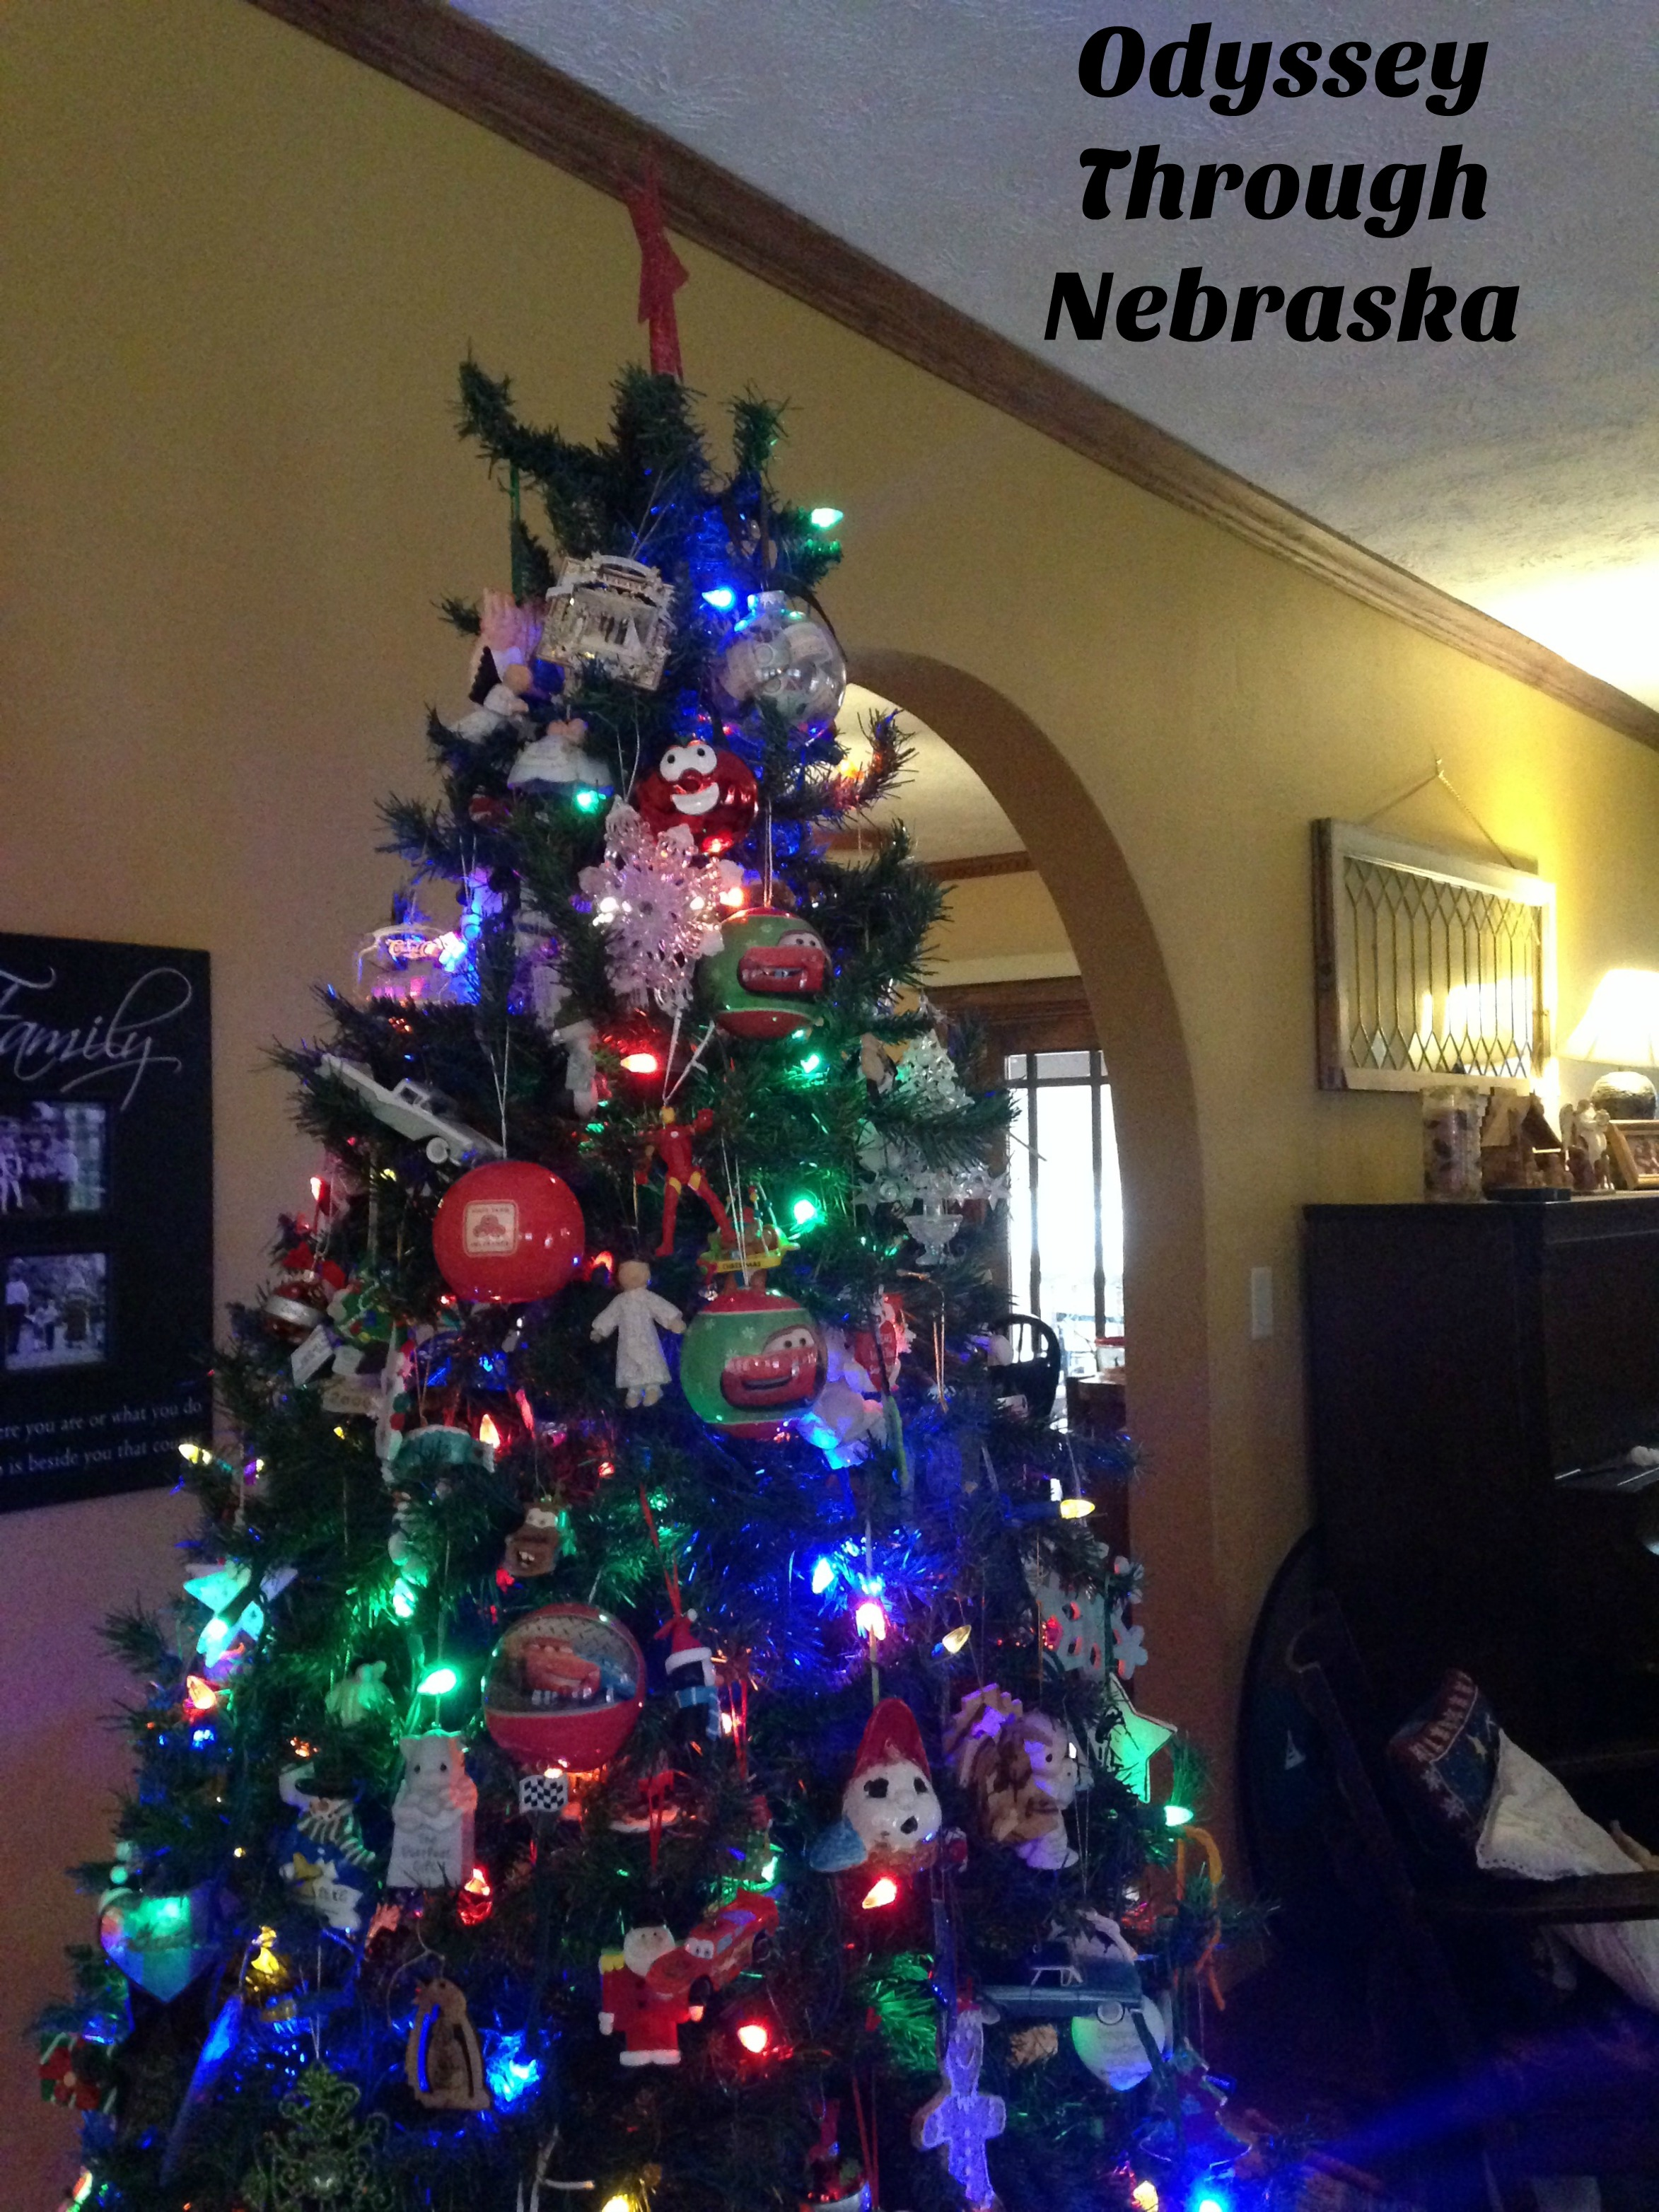 Odyssey Through Nebraska's Christmas tree